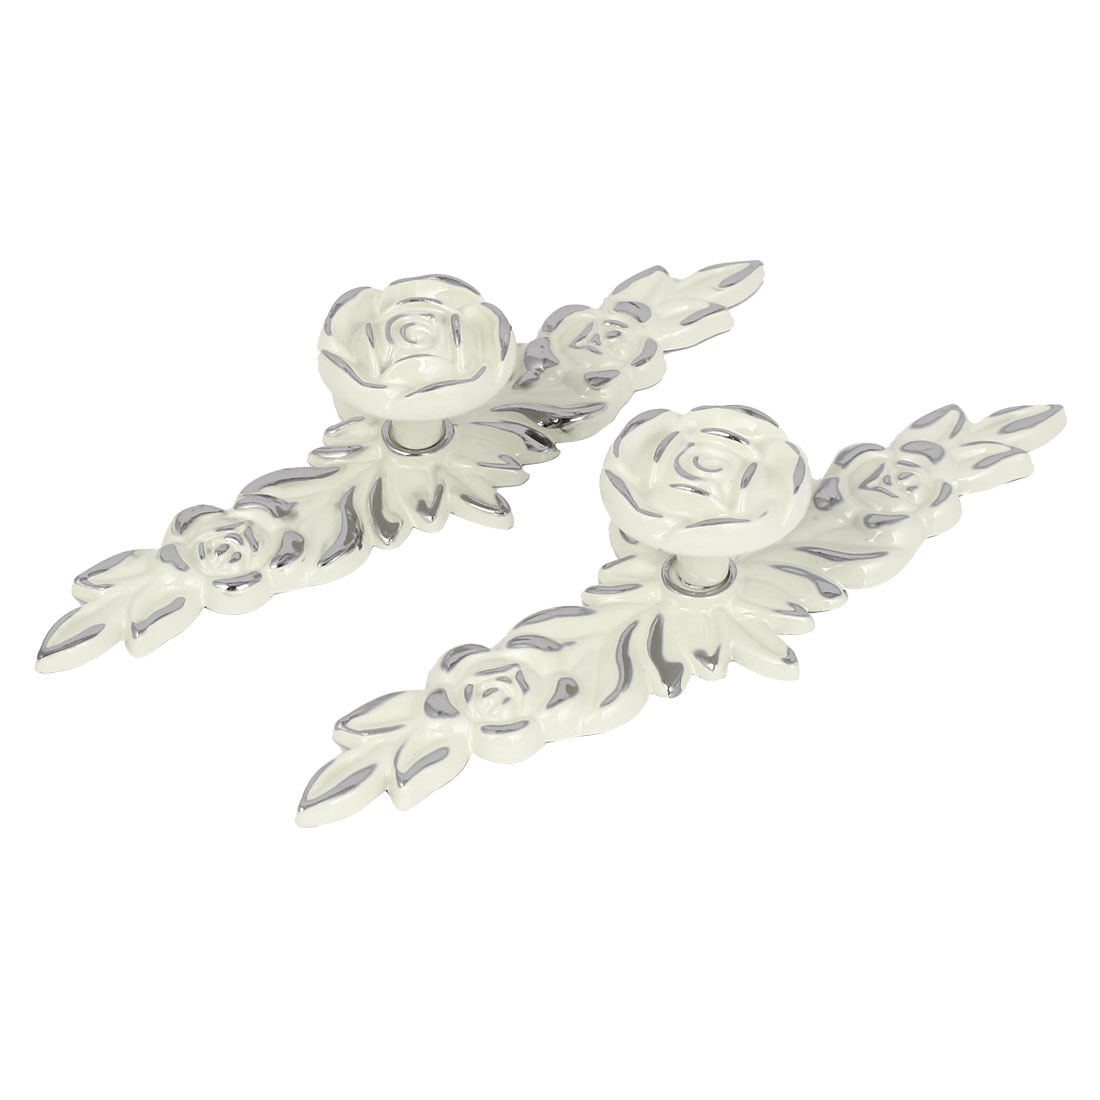 Cabinet Drawer Furniture Zinc Alloy Rose Pattern Pull Handle White 2pcs